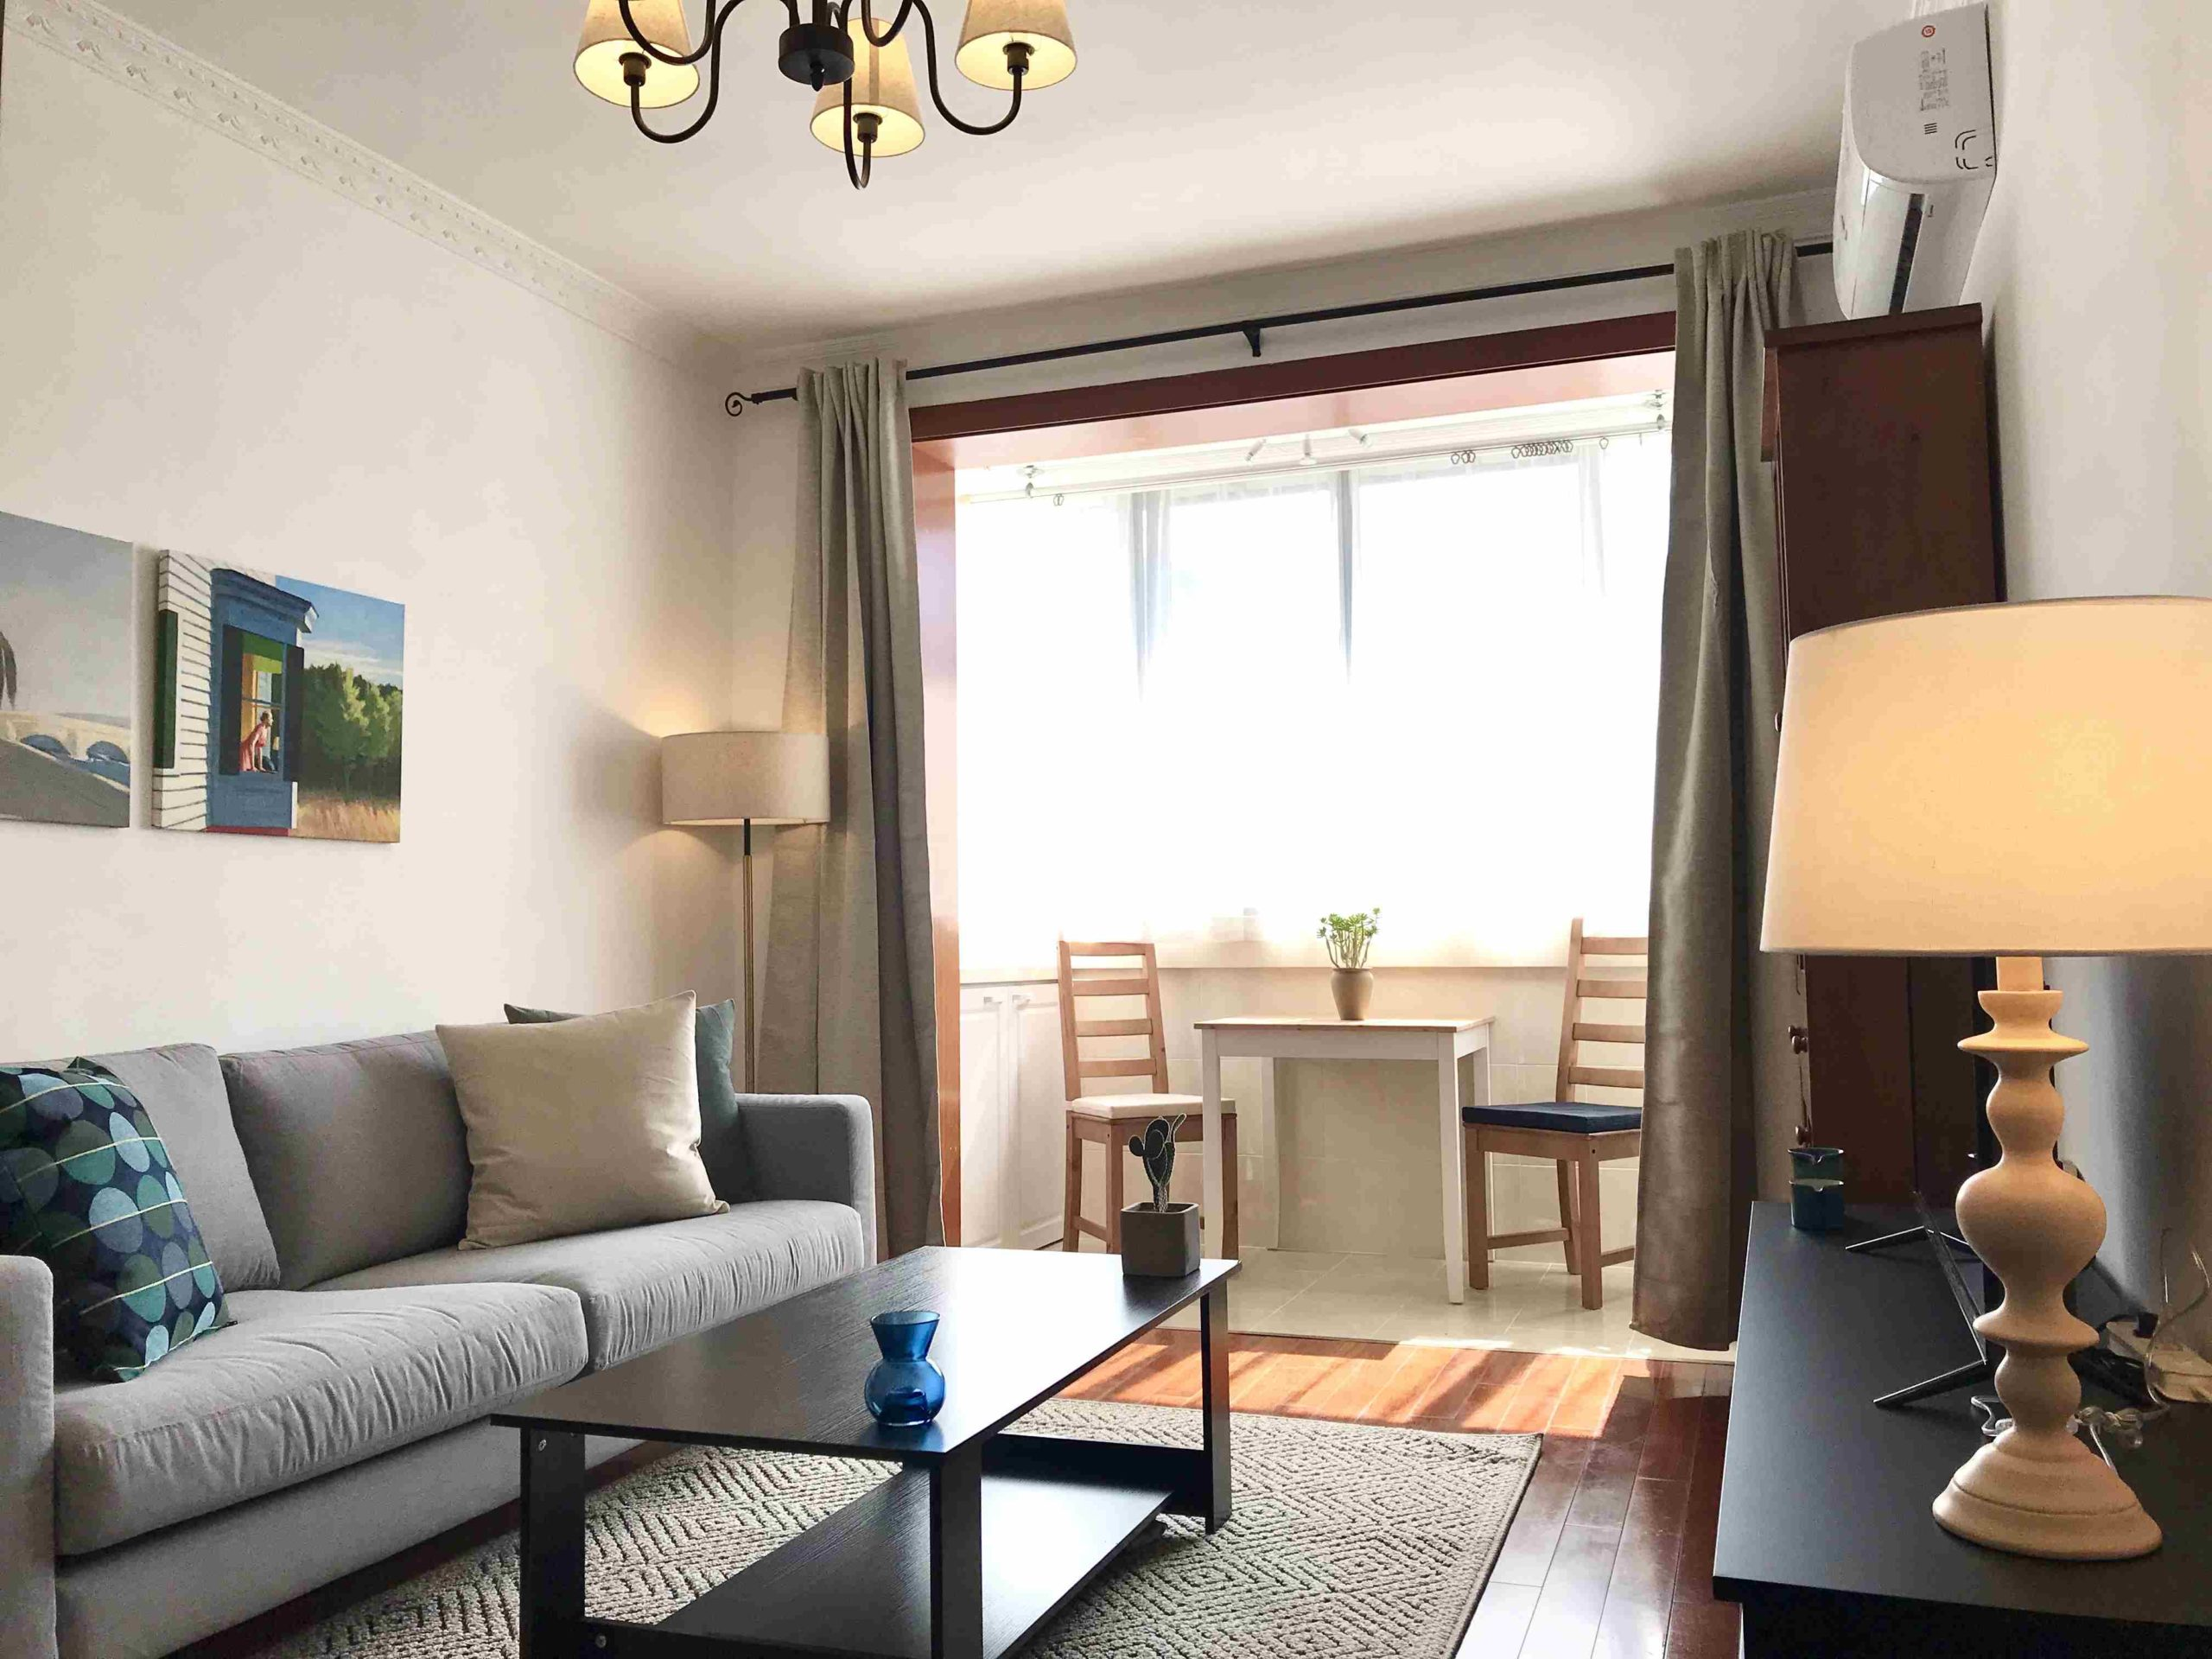 1br at Zhenning Rd Near Jiangsu Rd L2/11